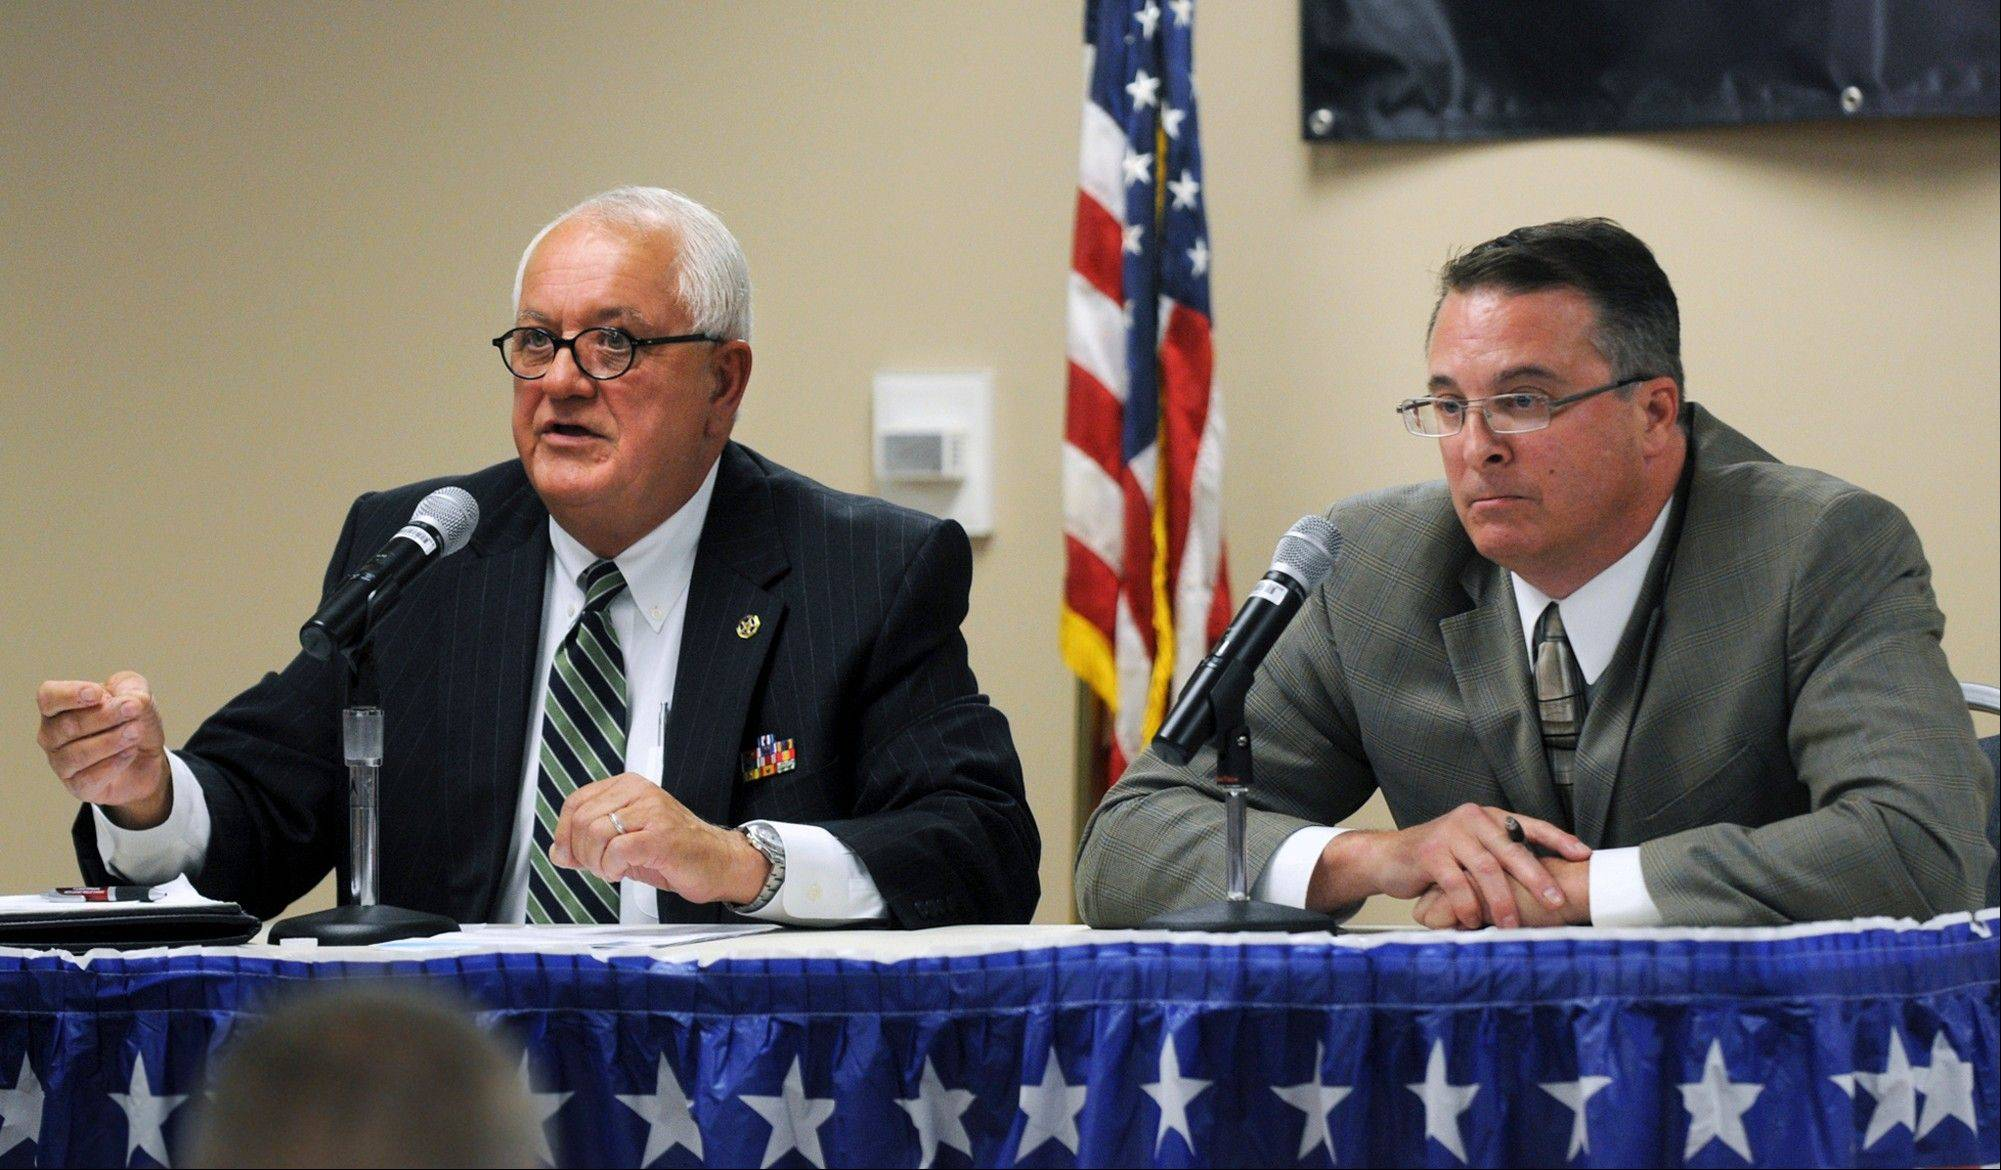 Republican Bill Albracht and Democratic incumbent Mike Jacobs, candidates in the 36th state Senate District, answer questions during a recent forum at Black Hawk College in Moline.